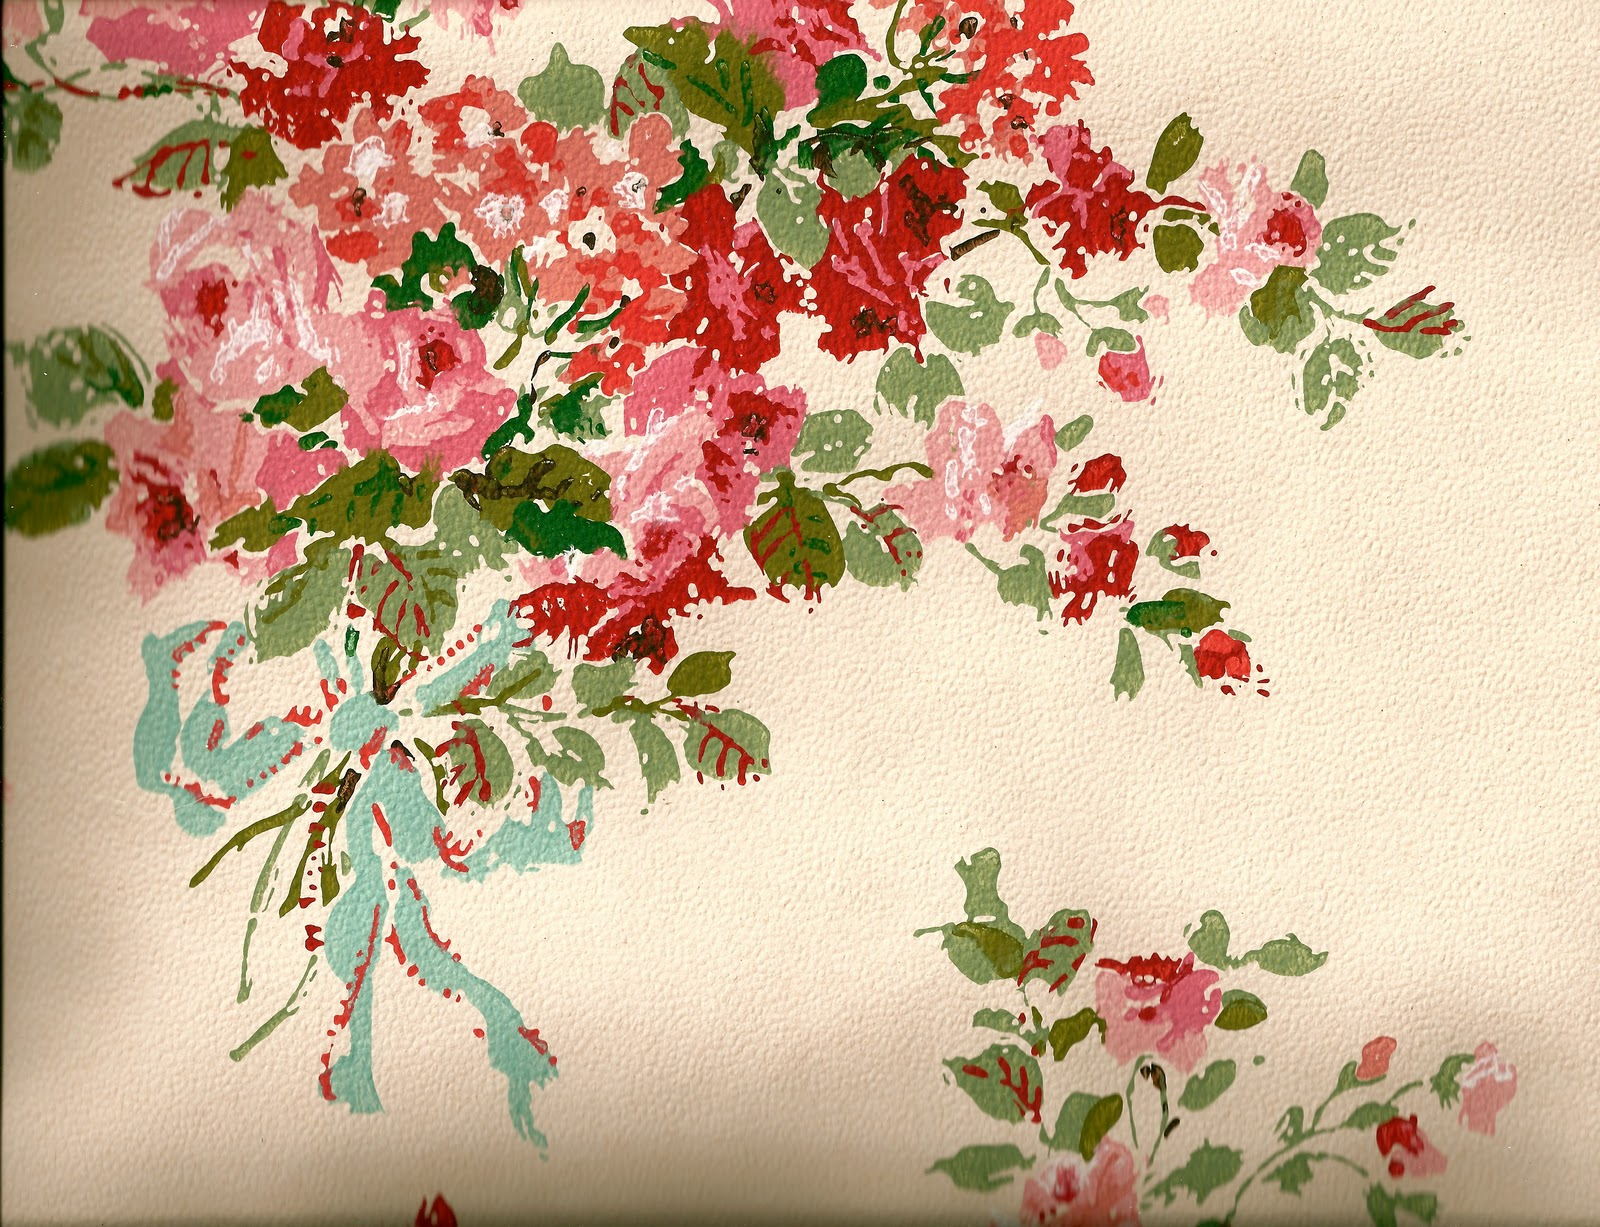 Shabby Chic Vintage Floral Wallpaper high resolution (1600 x 1227 )